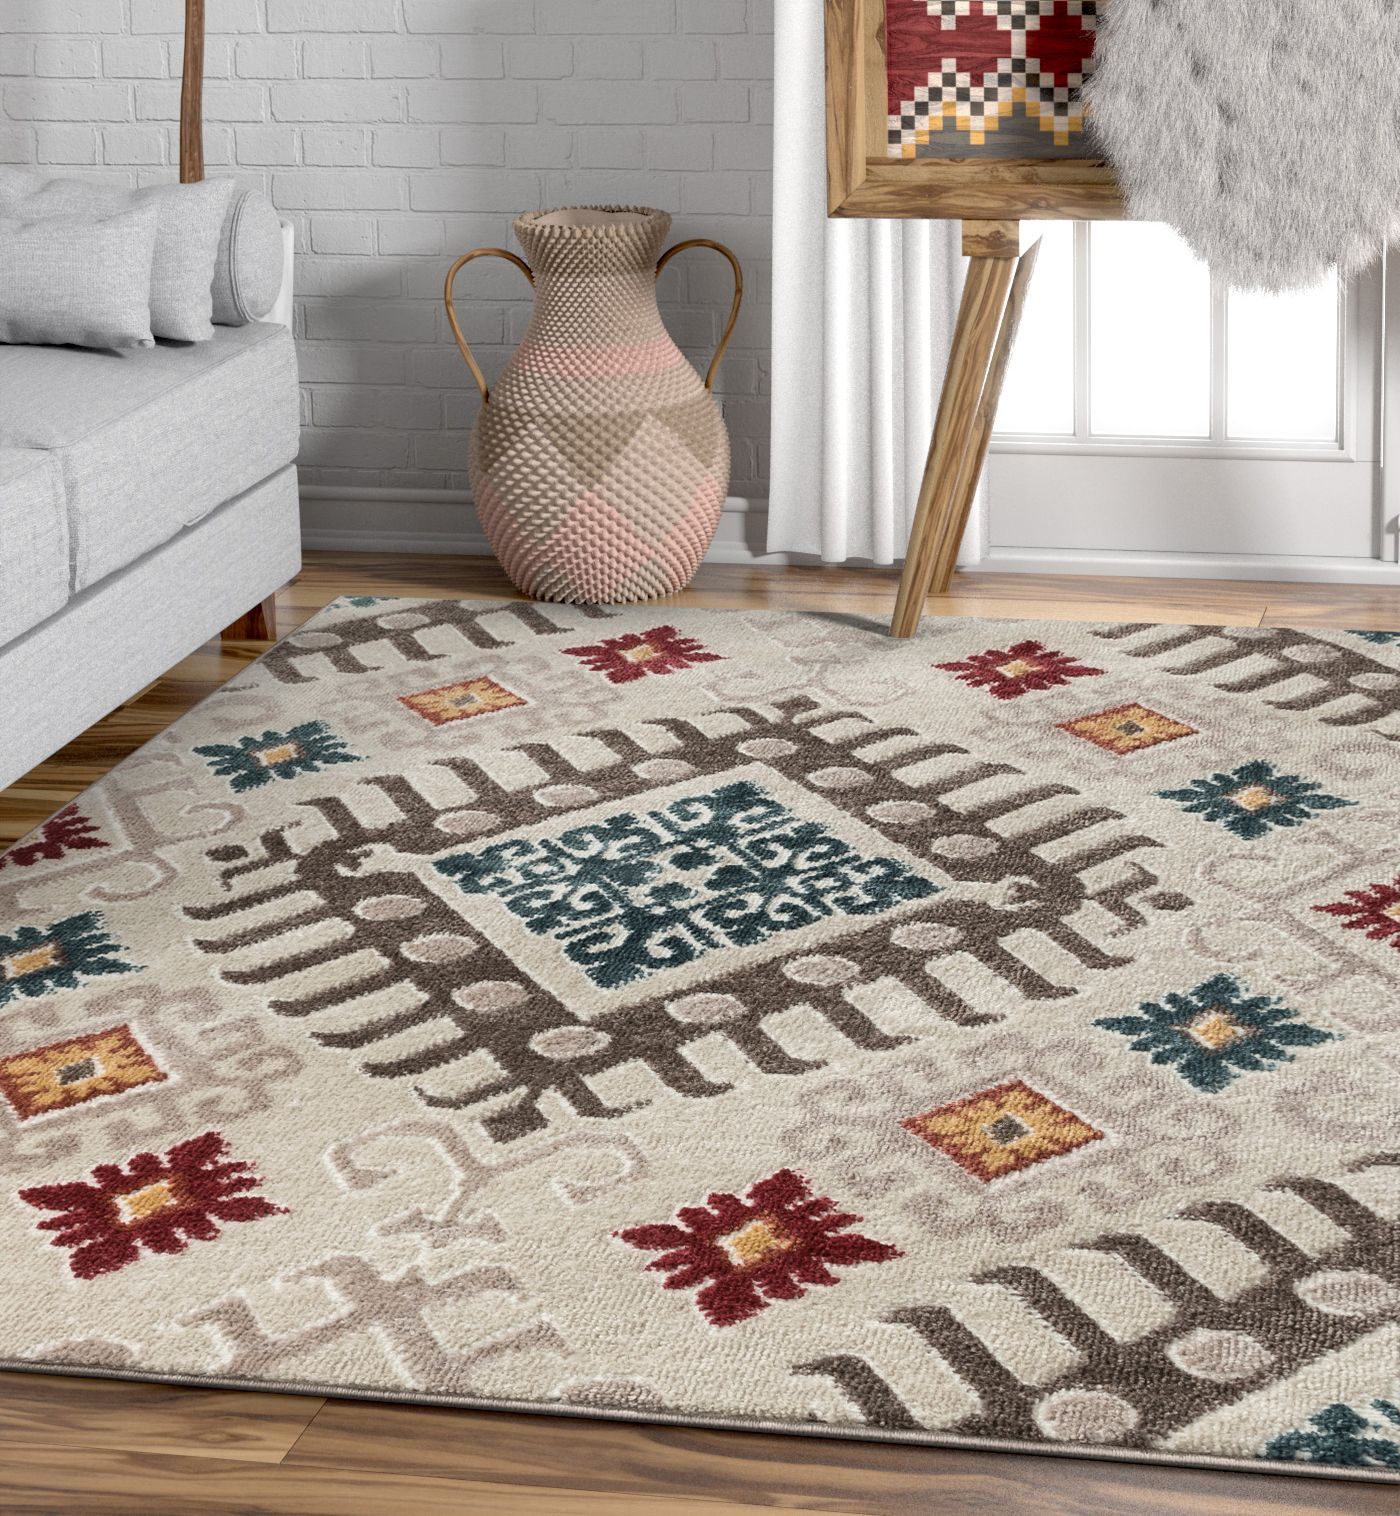 Well Woven Moroccan Ikat Area Rug Multicolor